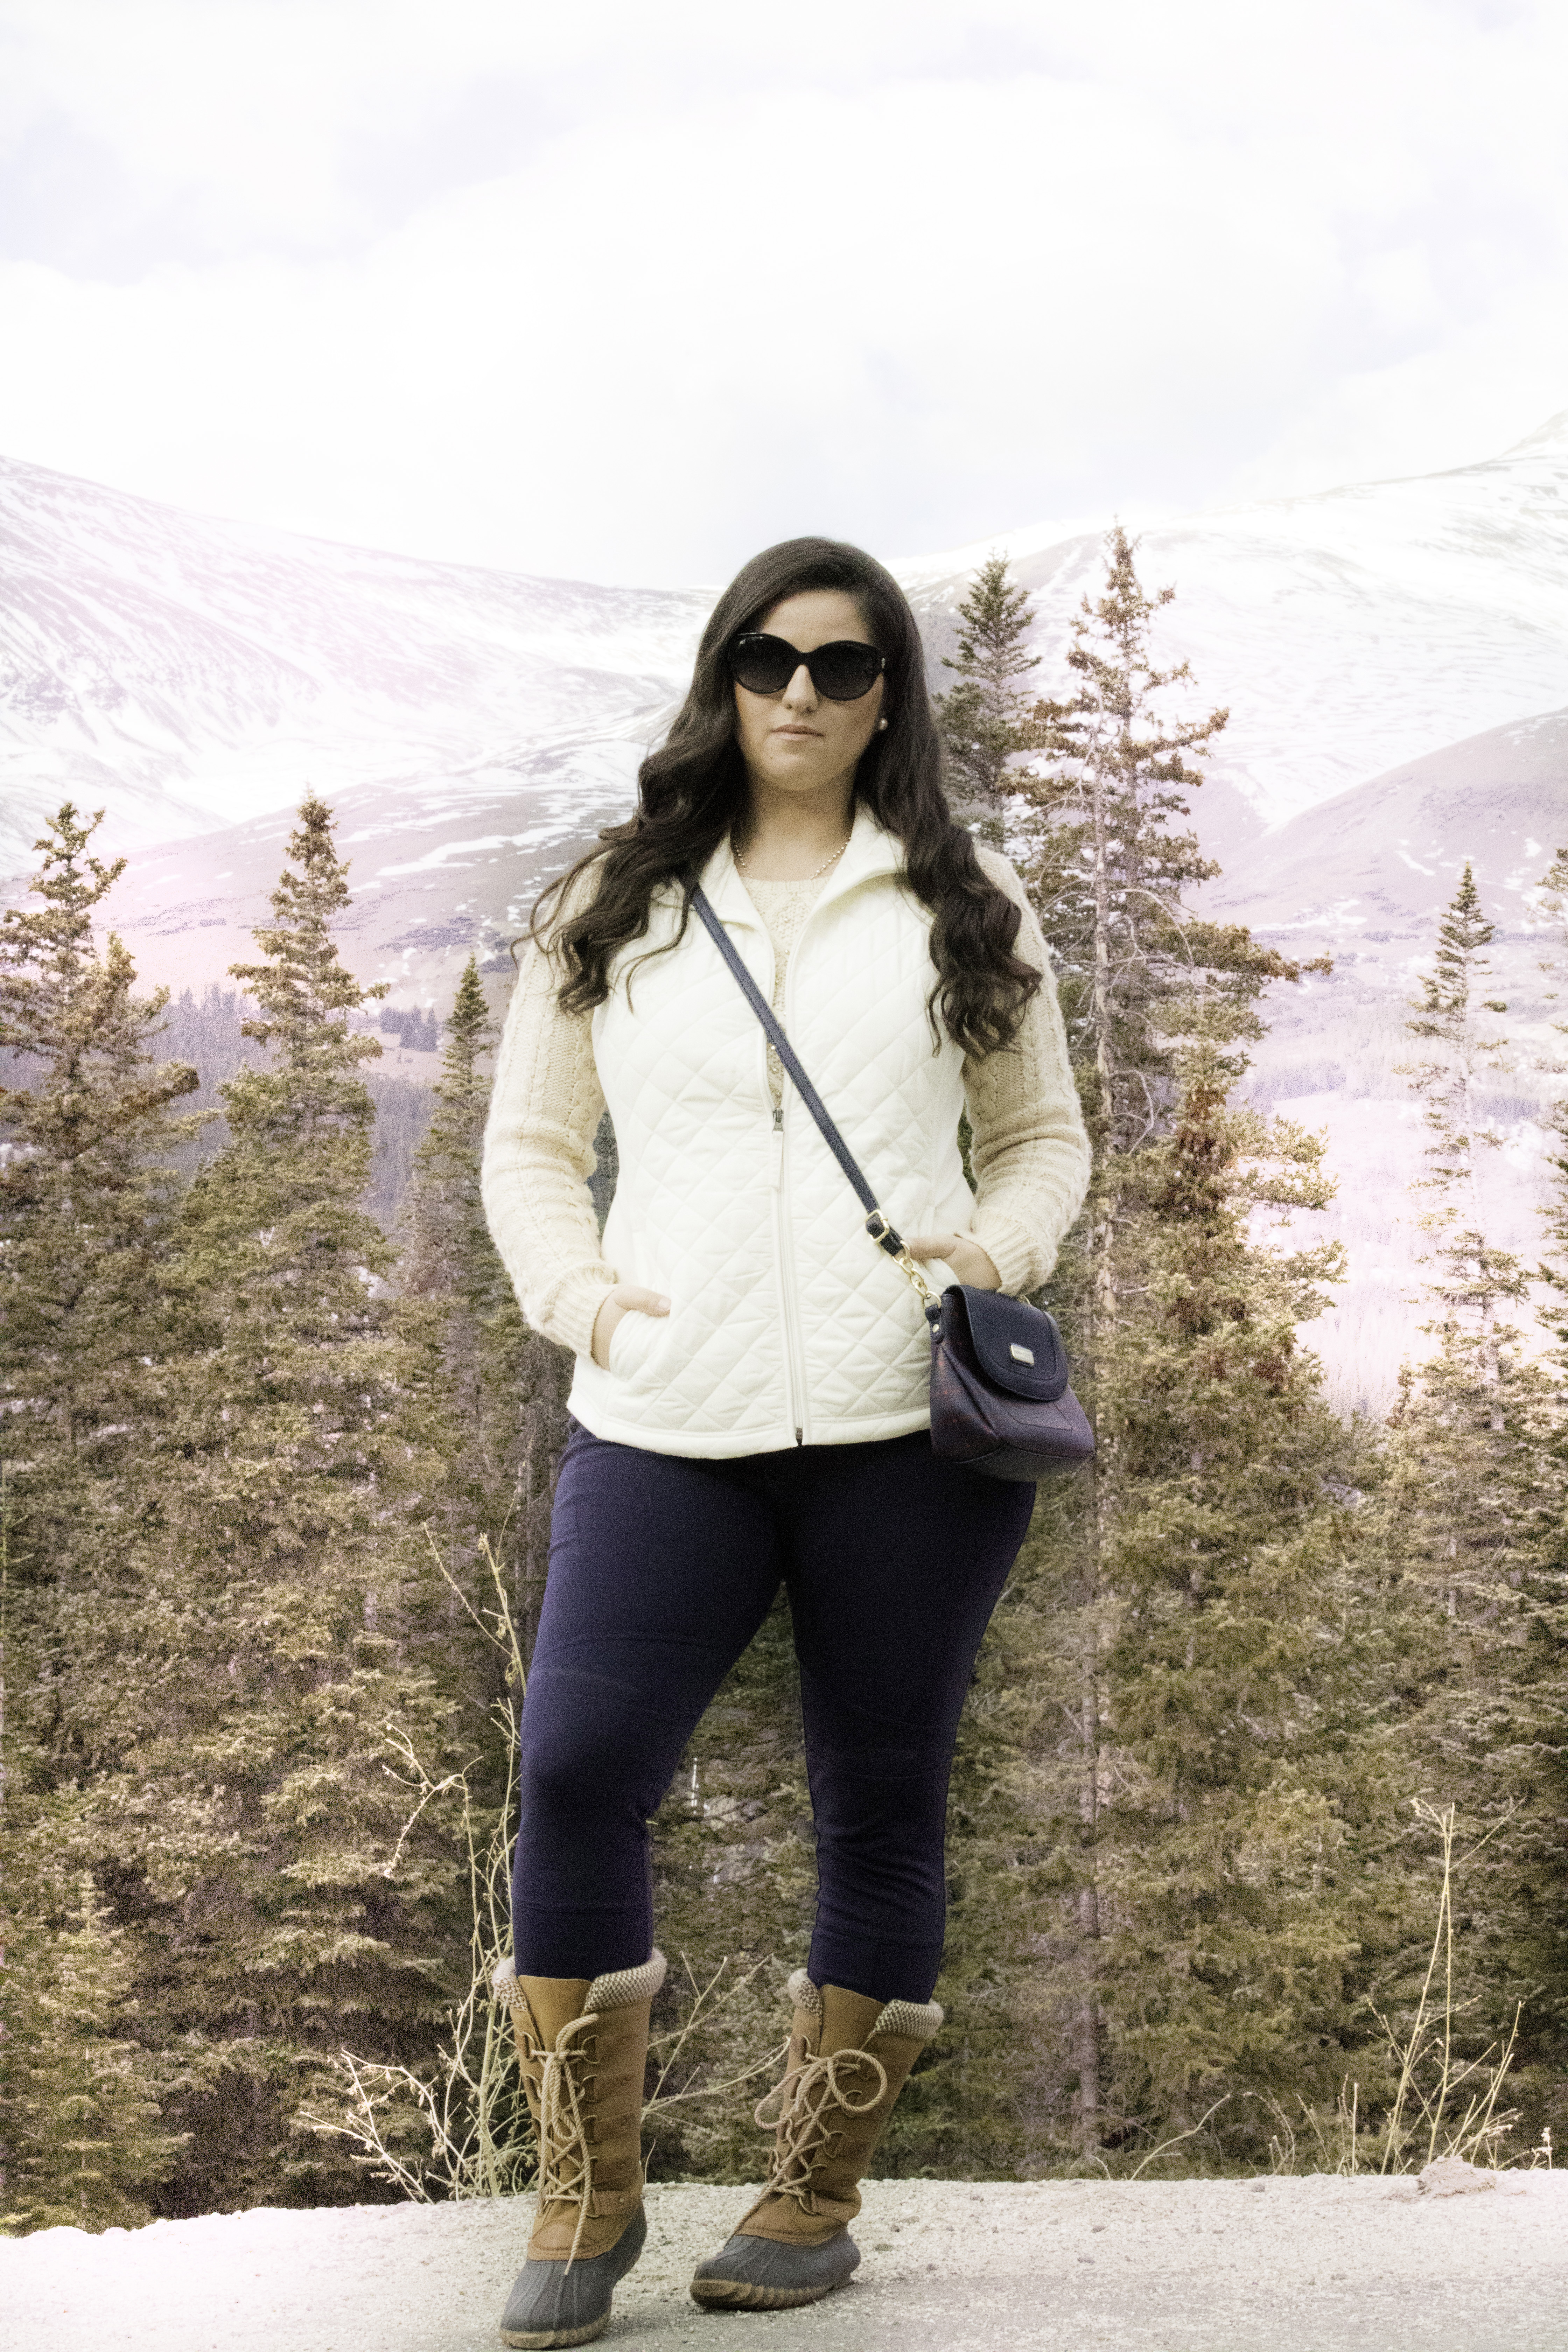 glamping trip to Breckenridge Colorado, glamping hub vacation